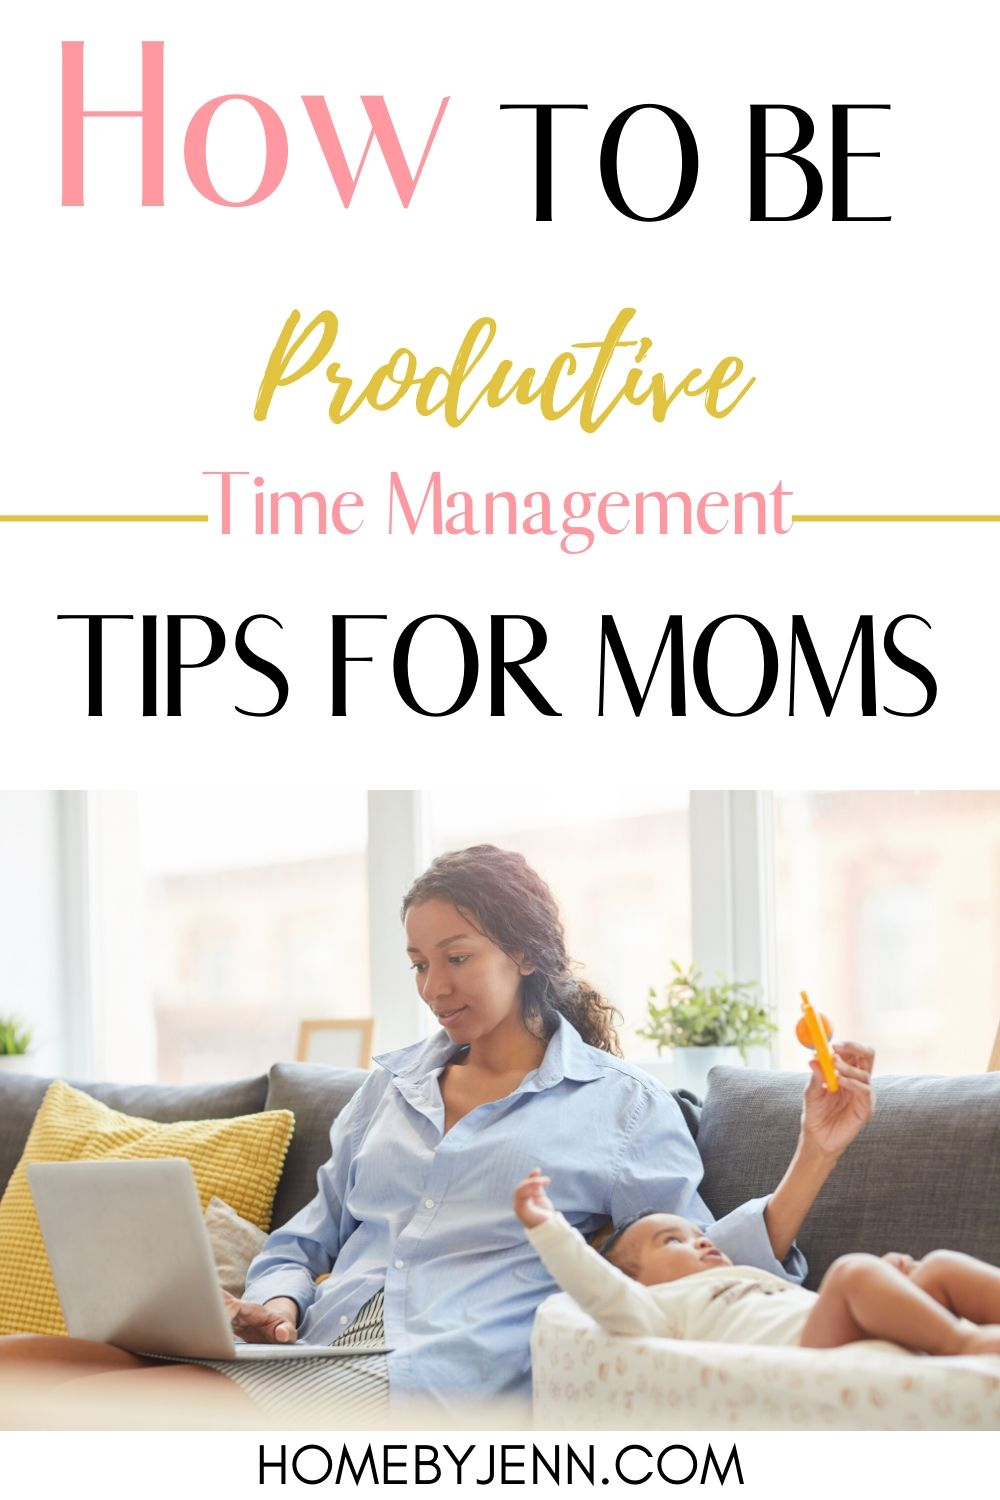 Time management tips for moms is necessary to save time and be more productive. #timemanagement #timemanagementtips #timesavingtips #beingproductive #momhack via @homebyjenn